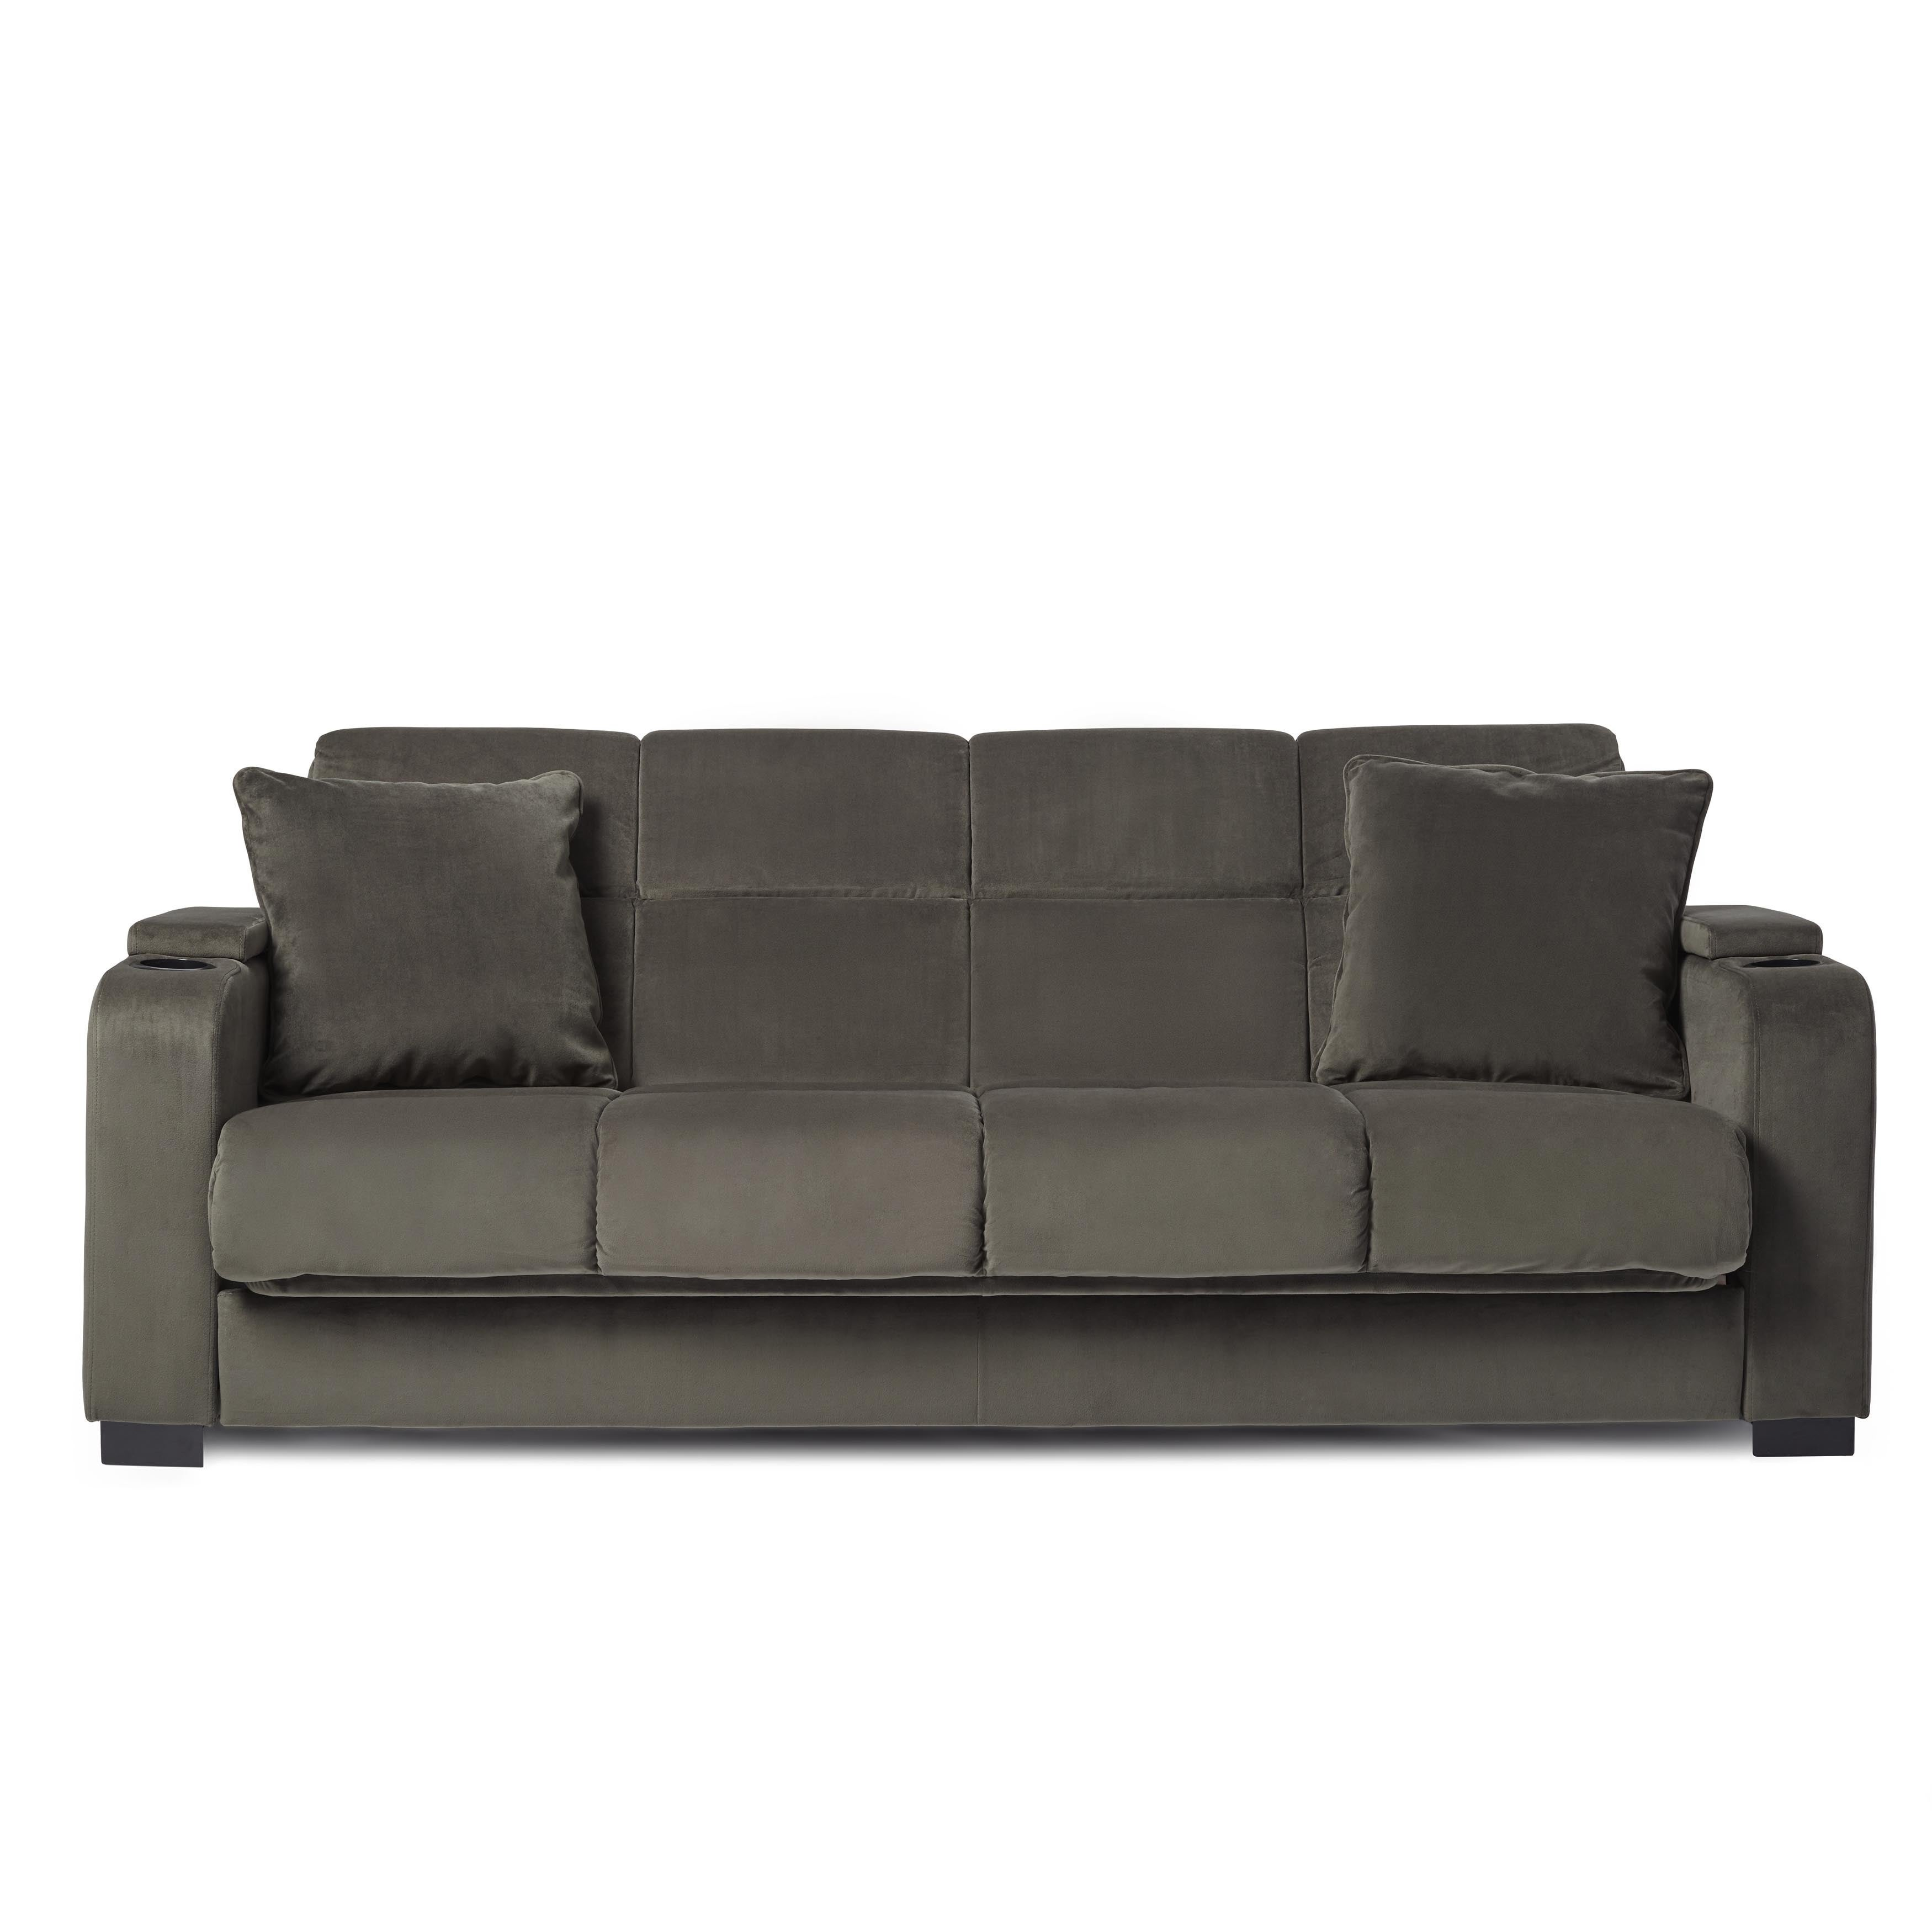 A Futon Couch Sofa Daybed Sleeper Velvet Recliner